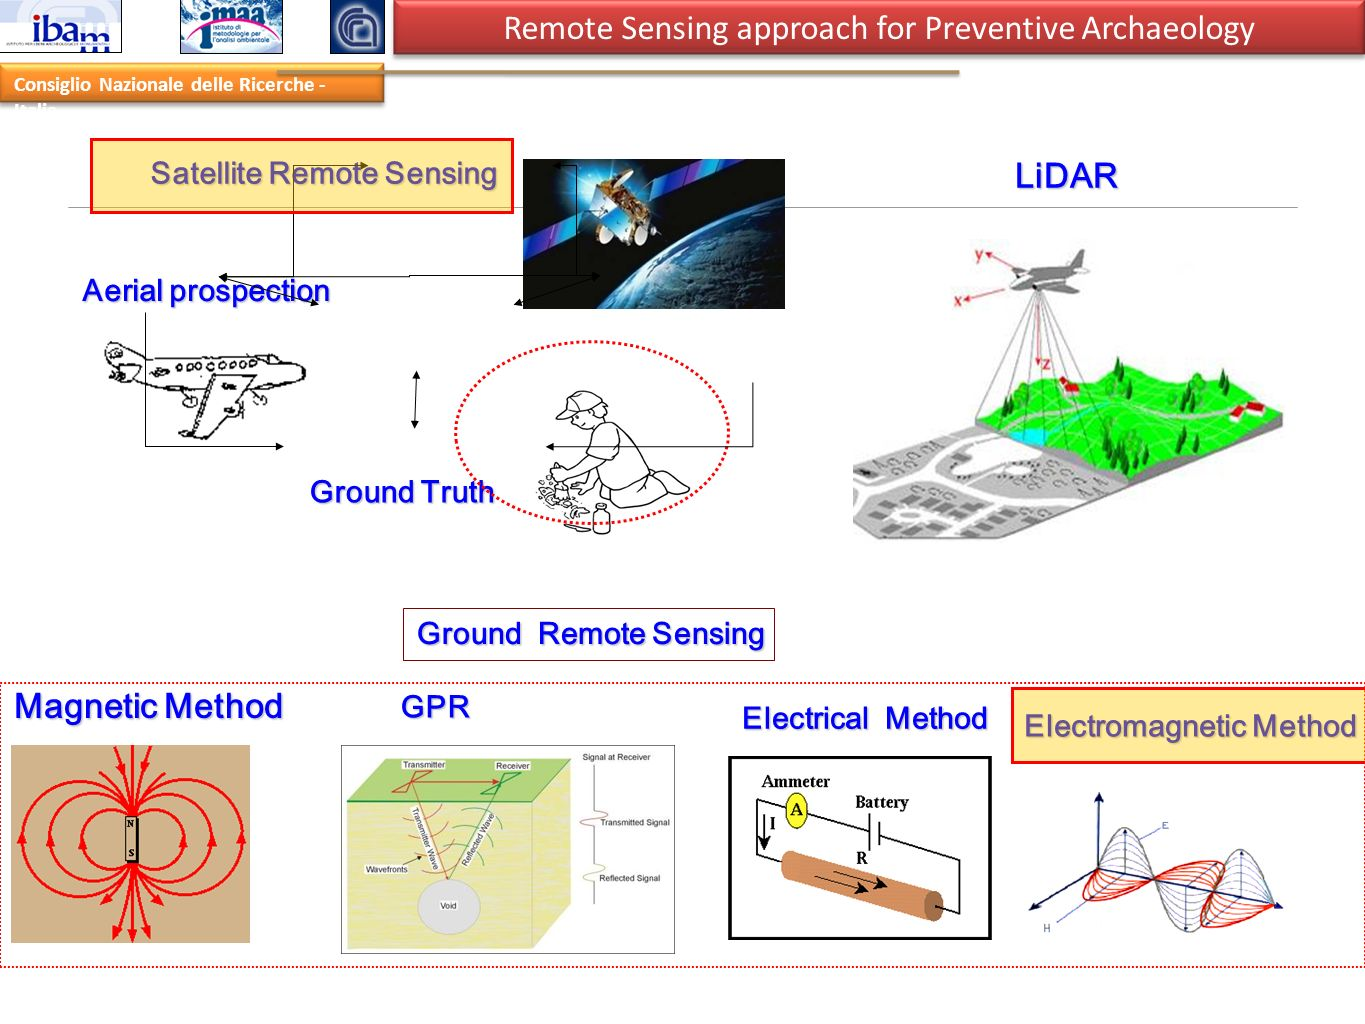 Remote Sensing approach for Preventive Archaeology